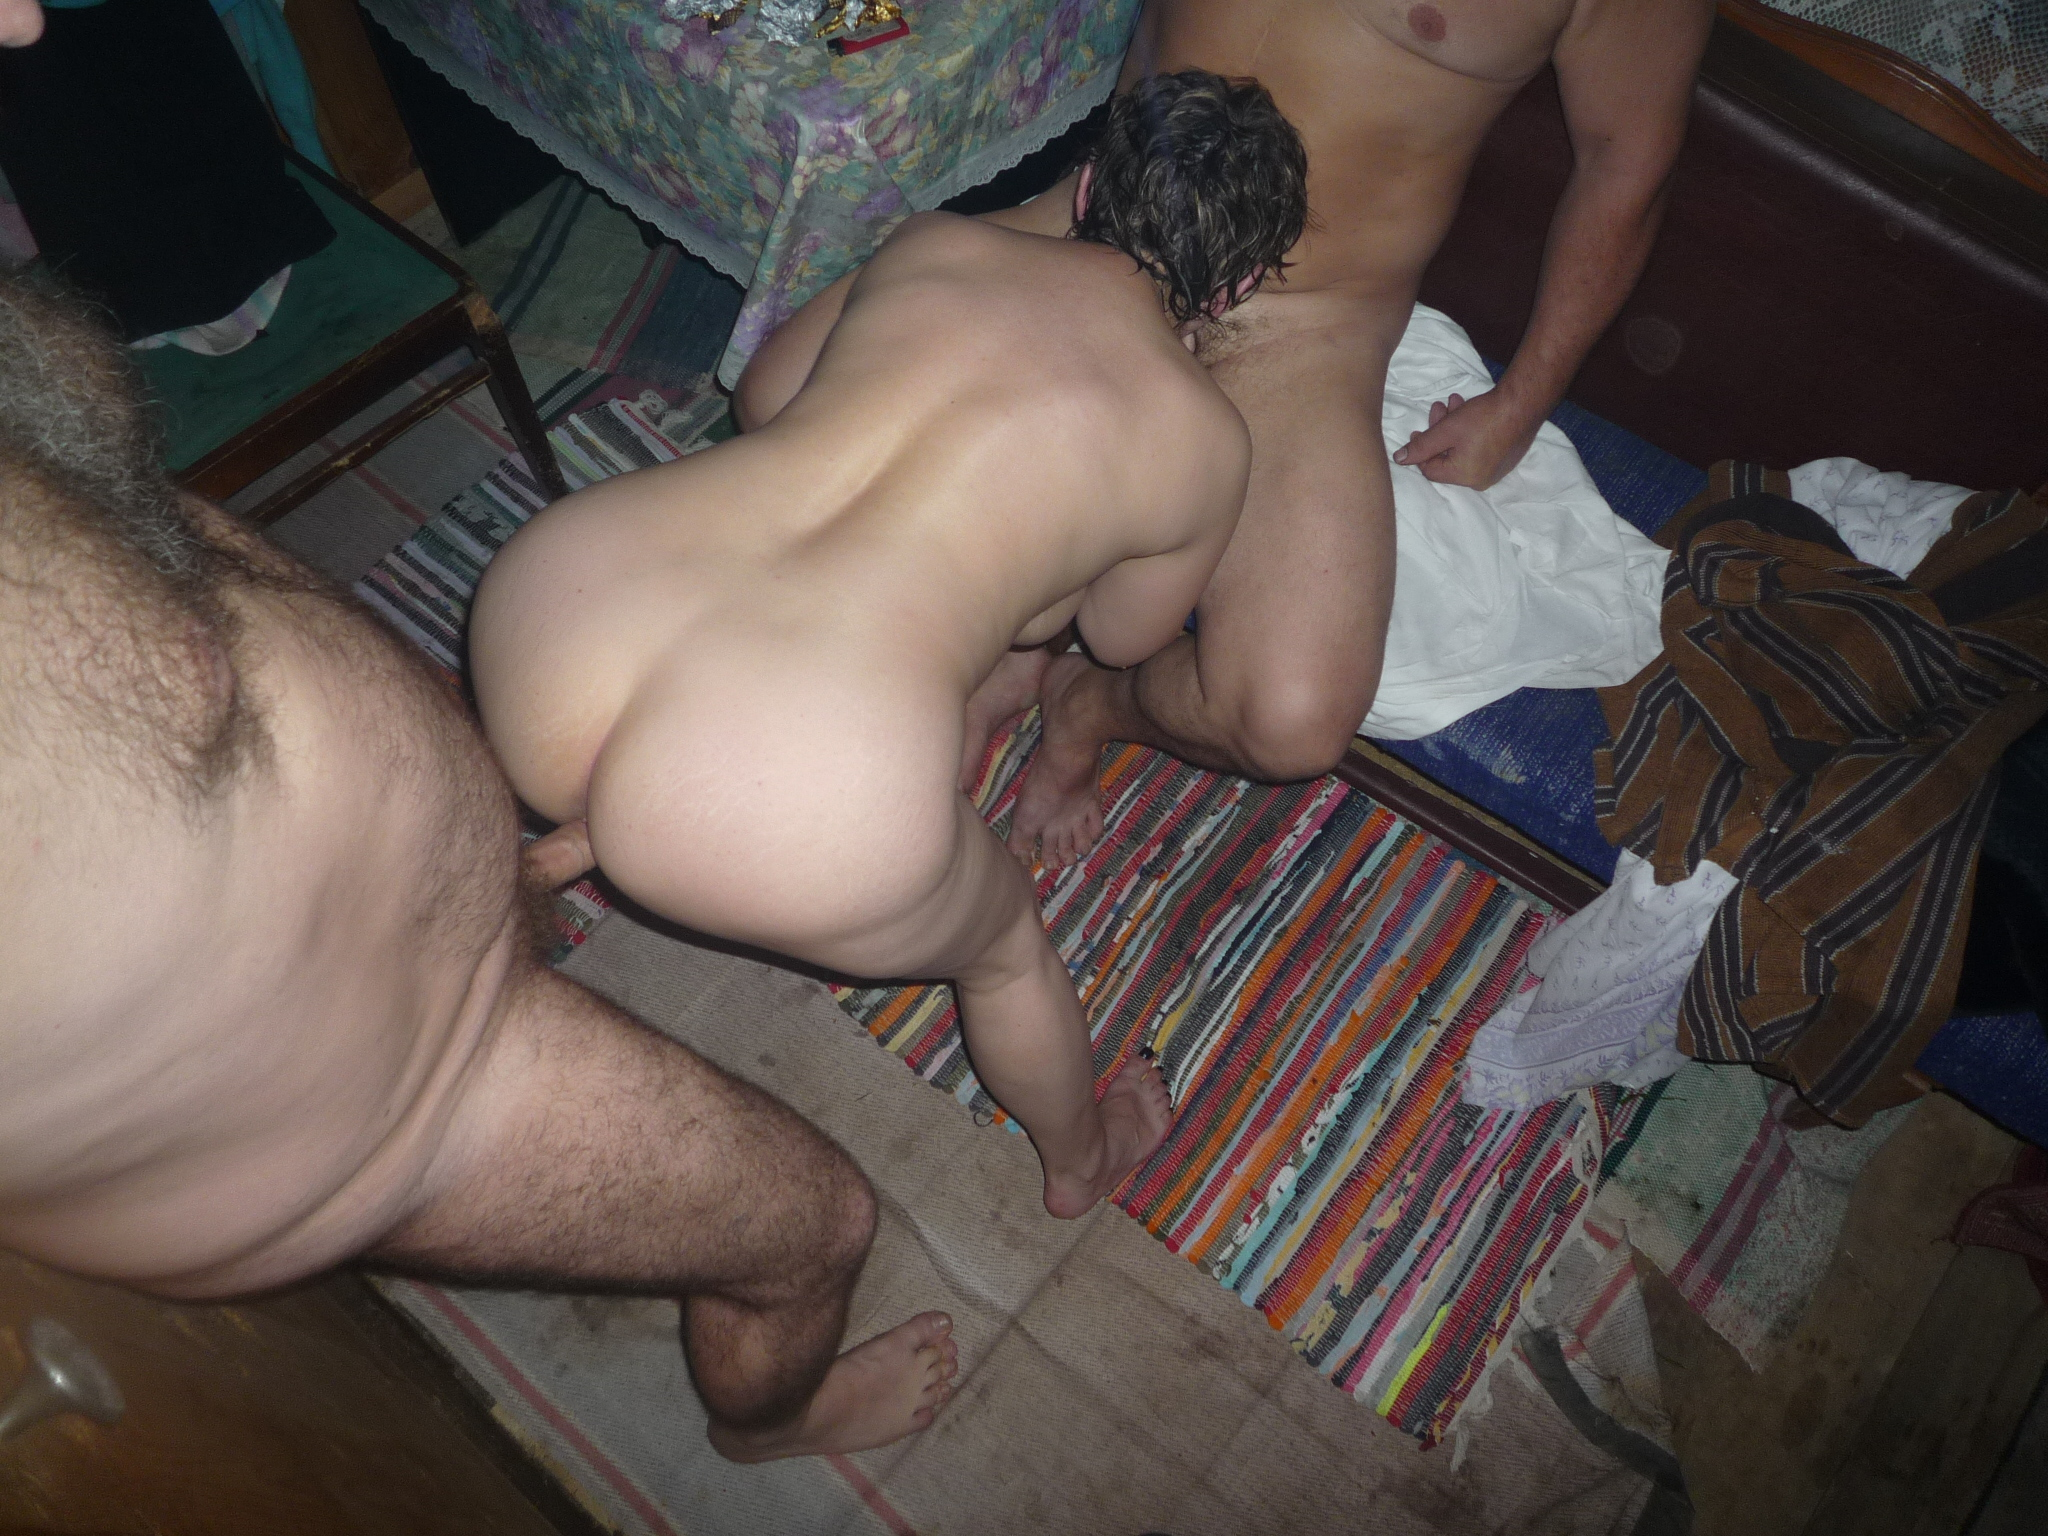 18y wife in bed with 4 much older men - 1 6